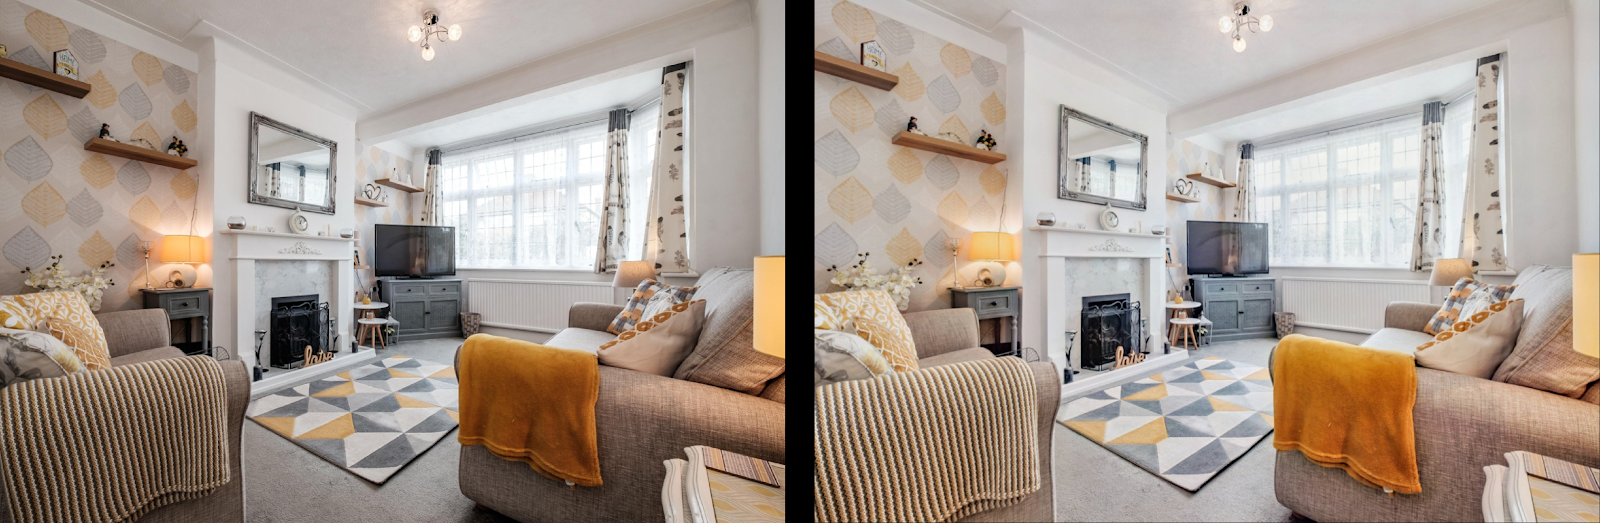 *Put a property image through the Autoenhance.ai software and you'll instantly receive a high quality photo.*